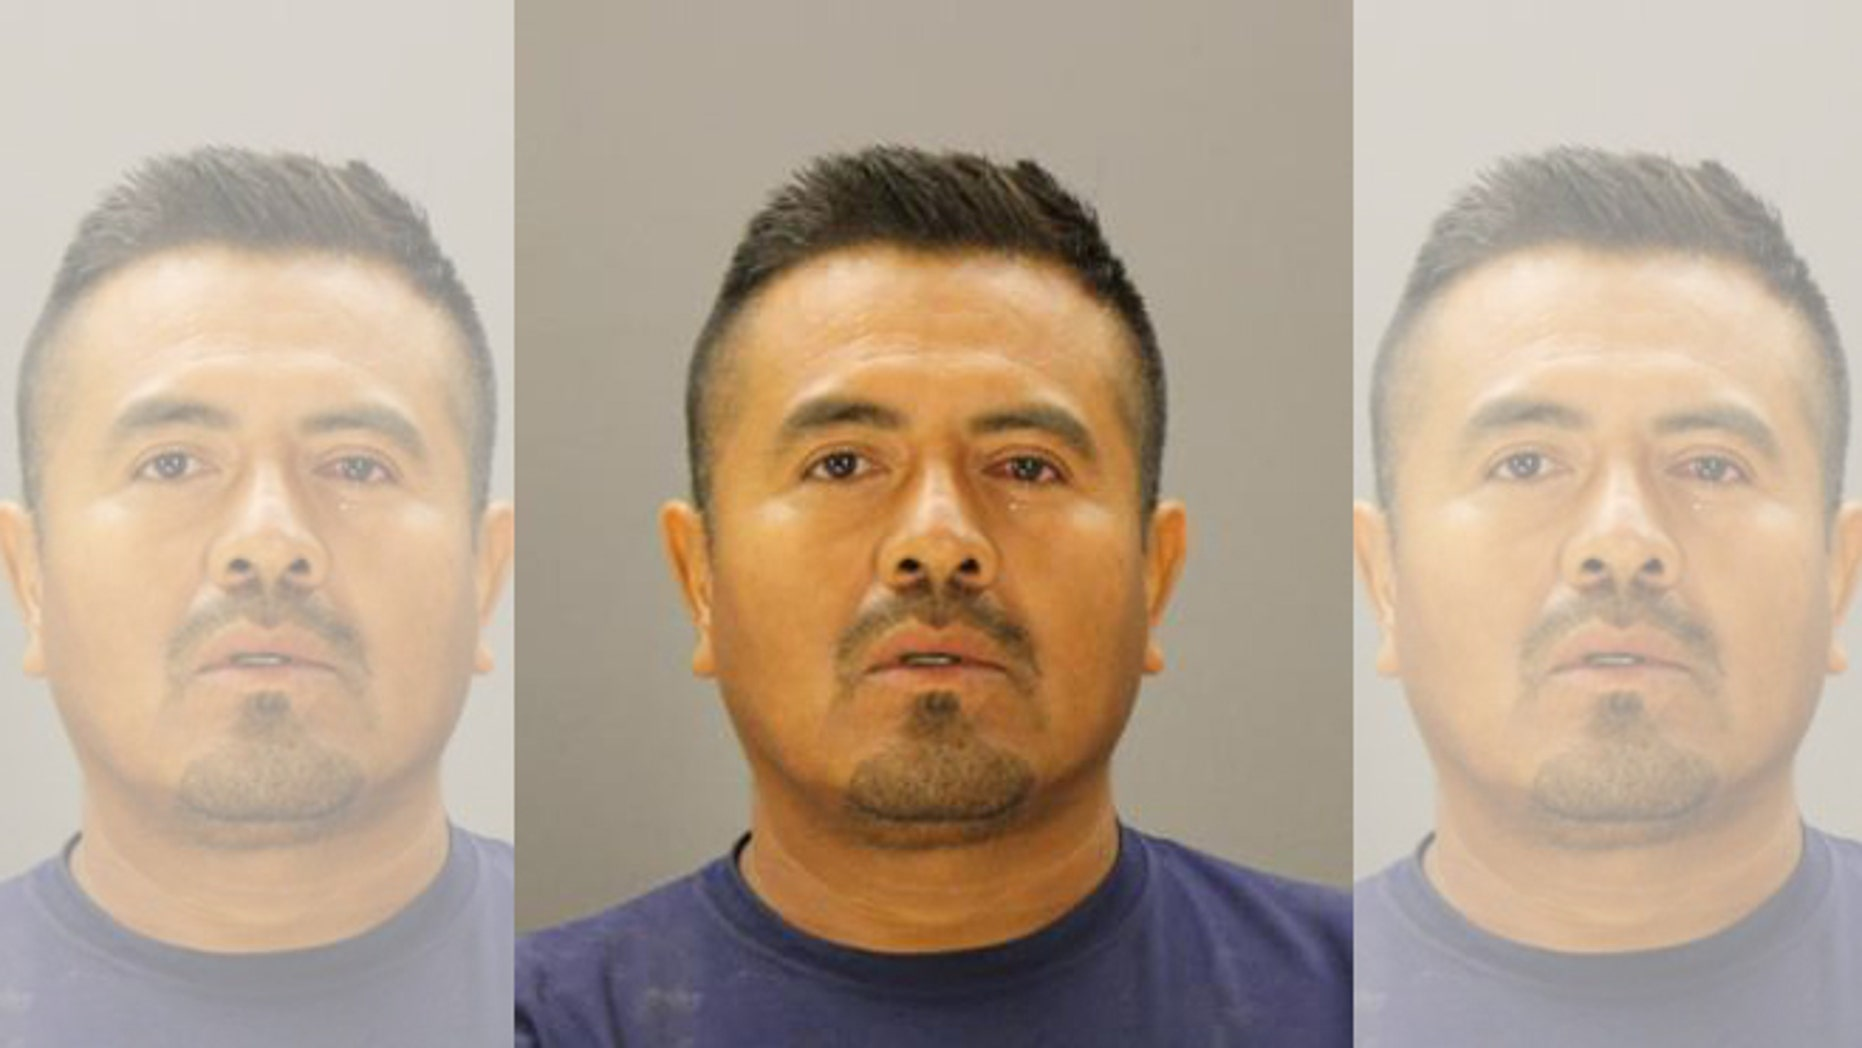 Roberto Laguna Landin. (Photo: Dallas County Sheriff's Office)